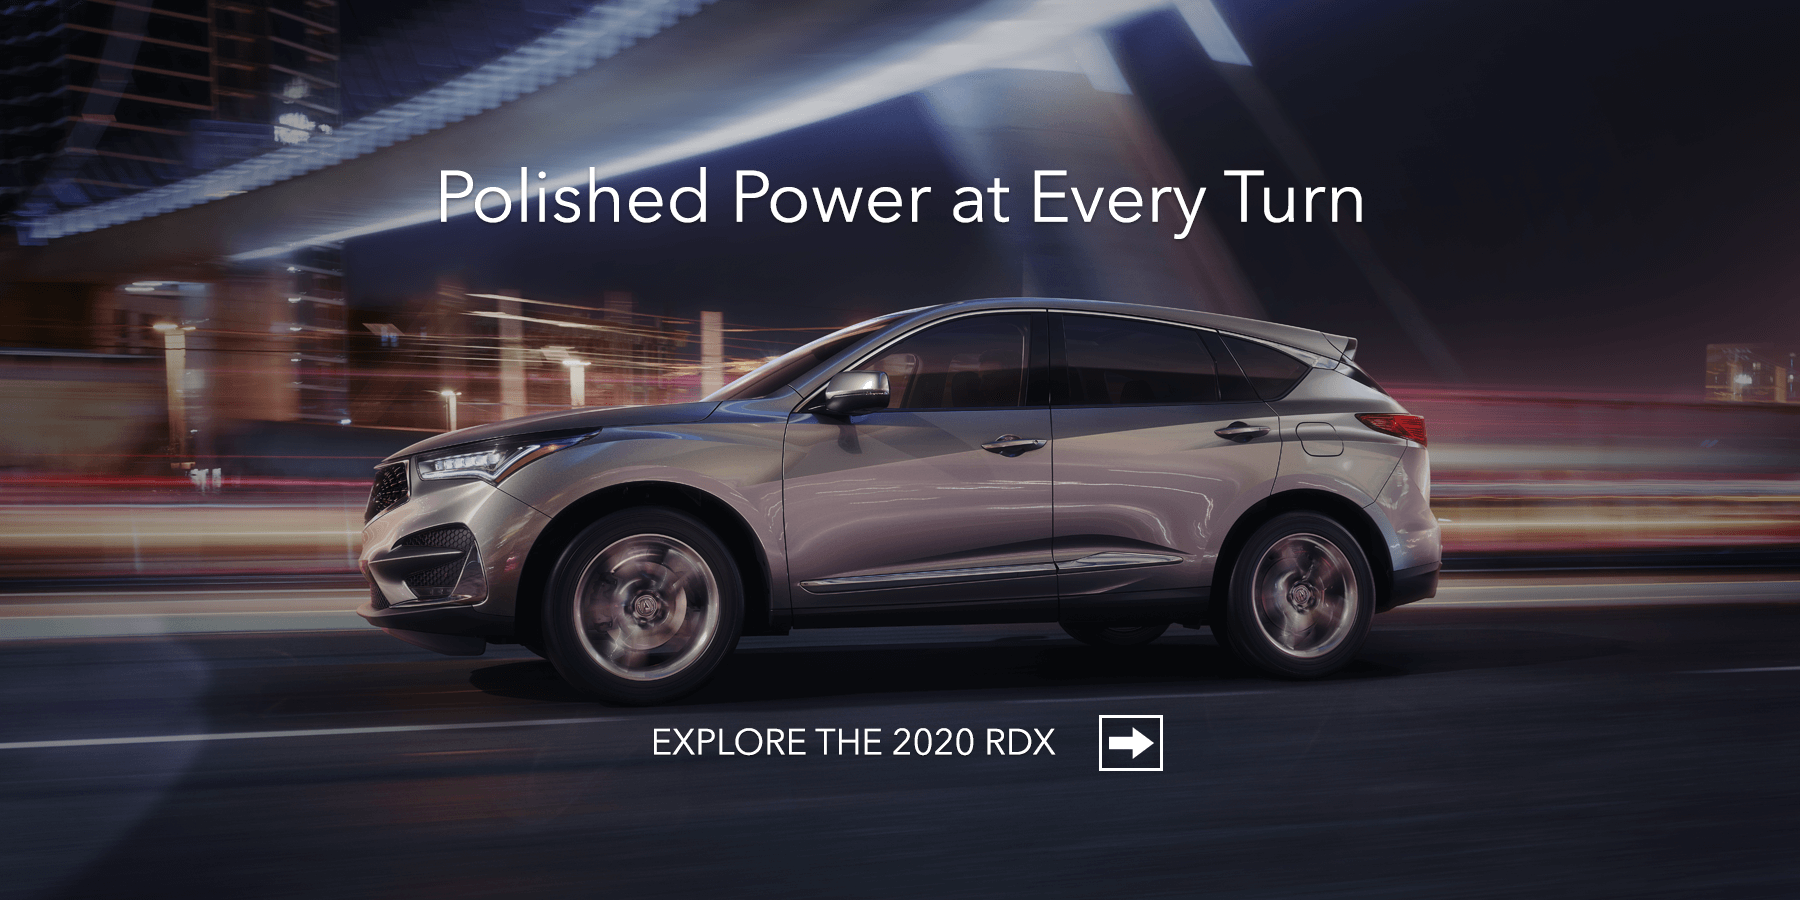 2020 Acura RDX Lunar Silver Metallic Side Profile Night HP Slide